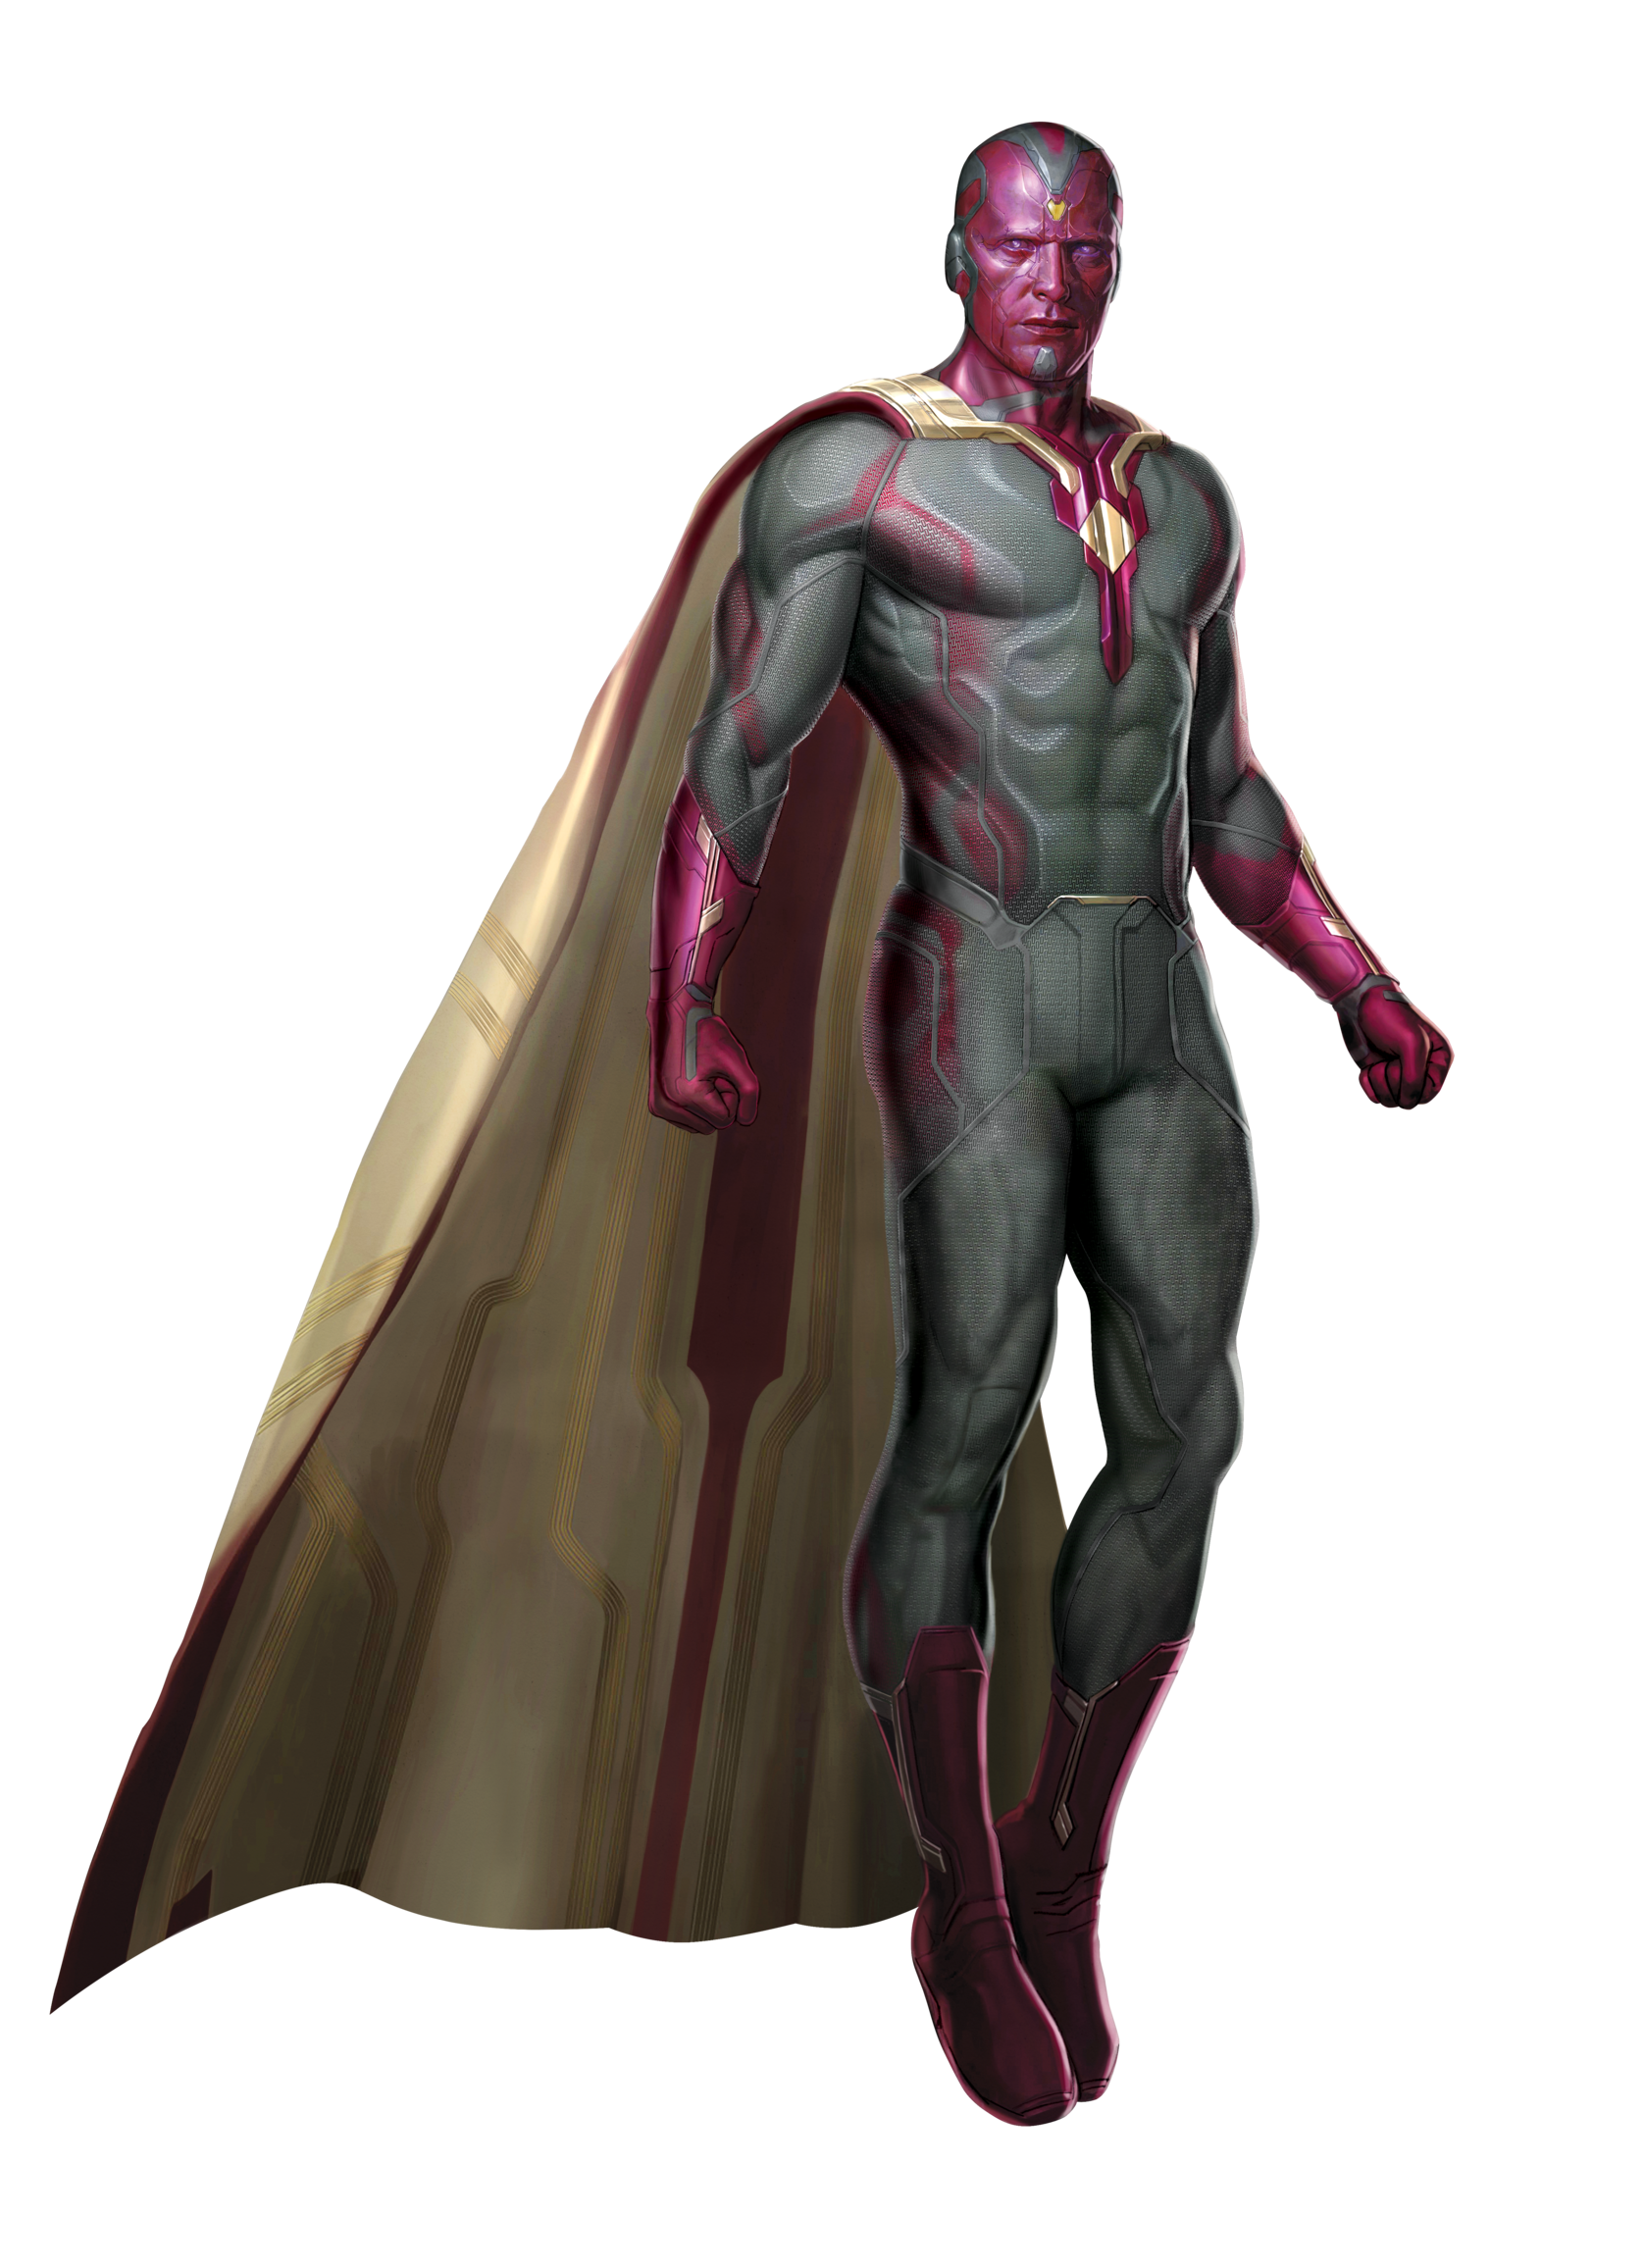 The Vision Is An Android Created By Ultron As Part Of His Original Plan To Create A More Powerful Versio Vision Avengers Marvel Avengers Alliance Marvel Vision